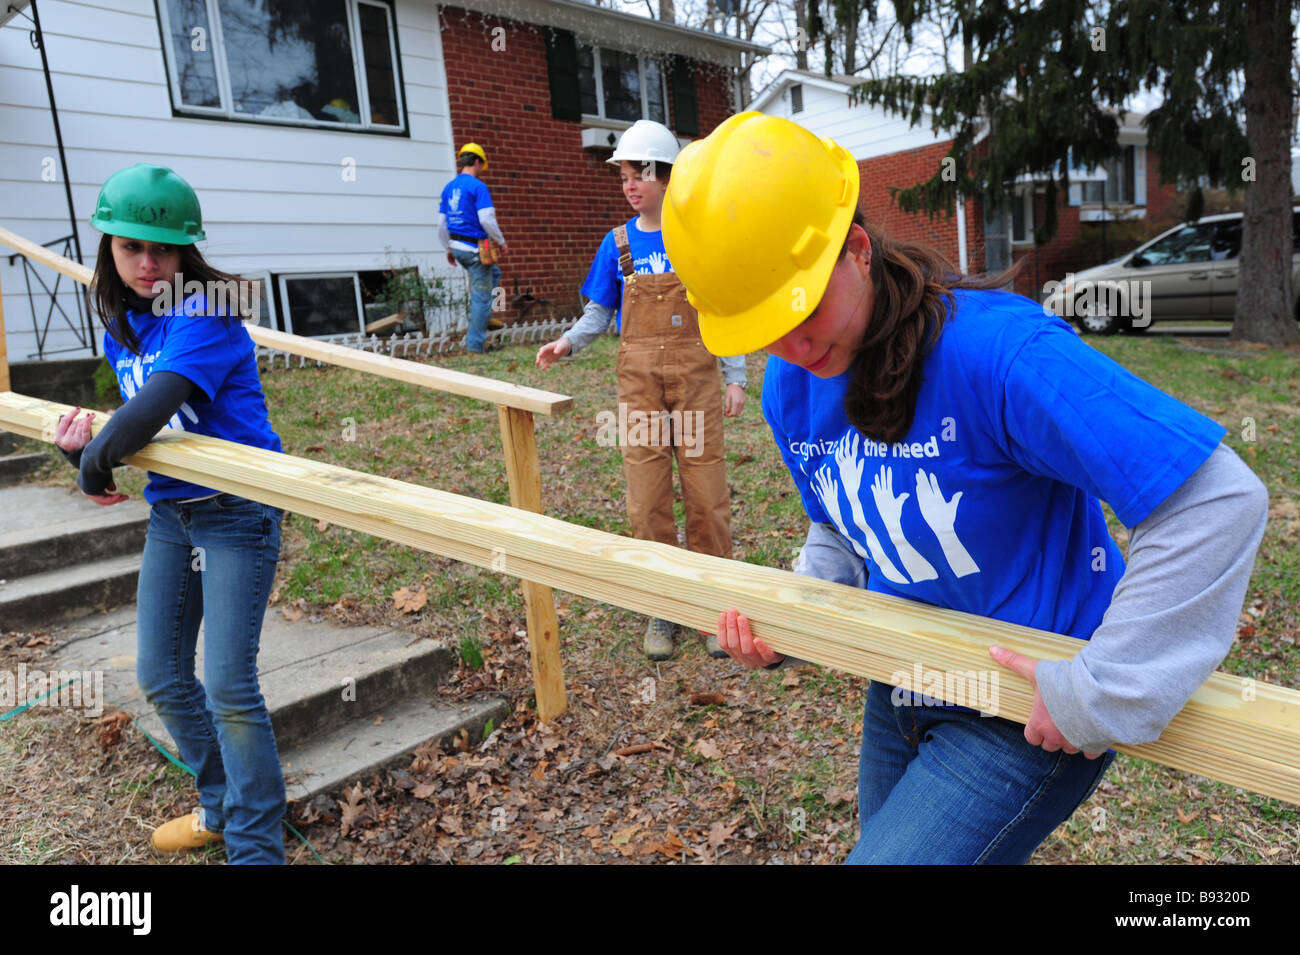 college-volunteers-work-on-renovating-a-house-with-the-non-profit-B9320D.jpg